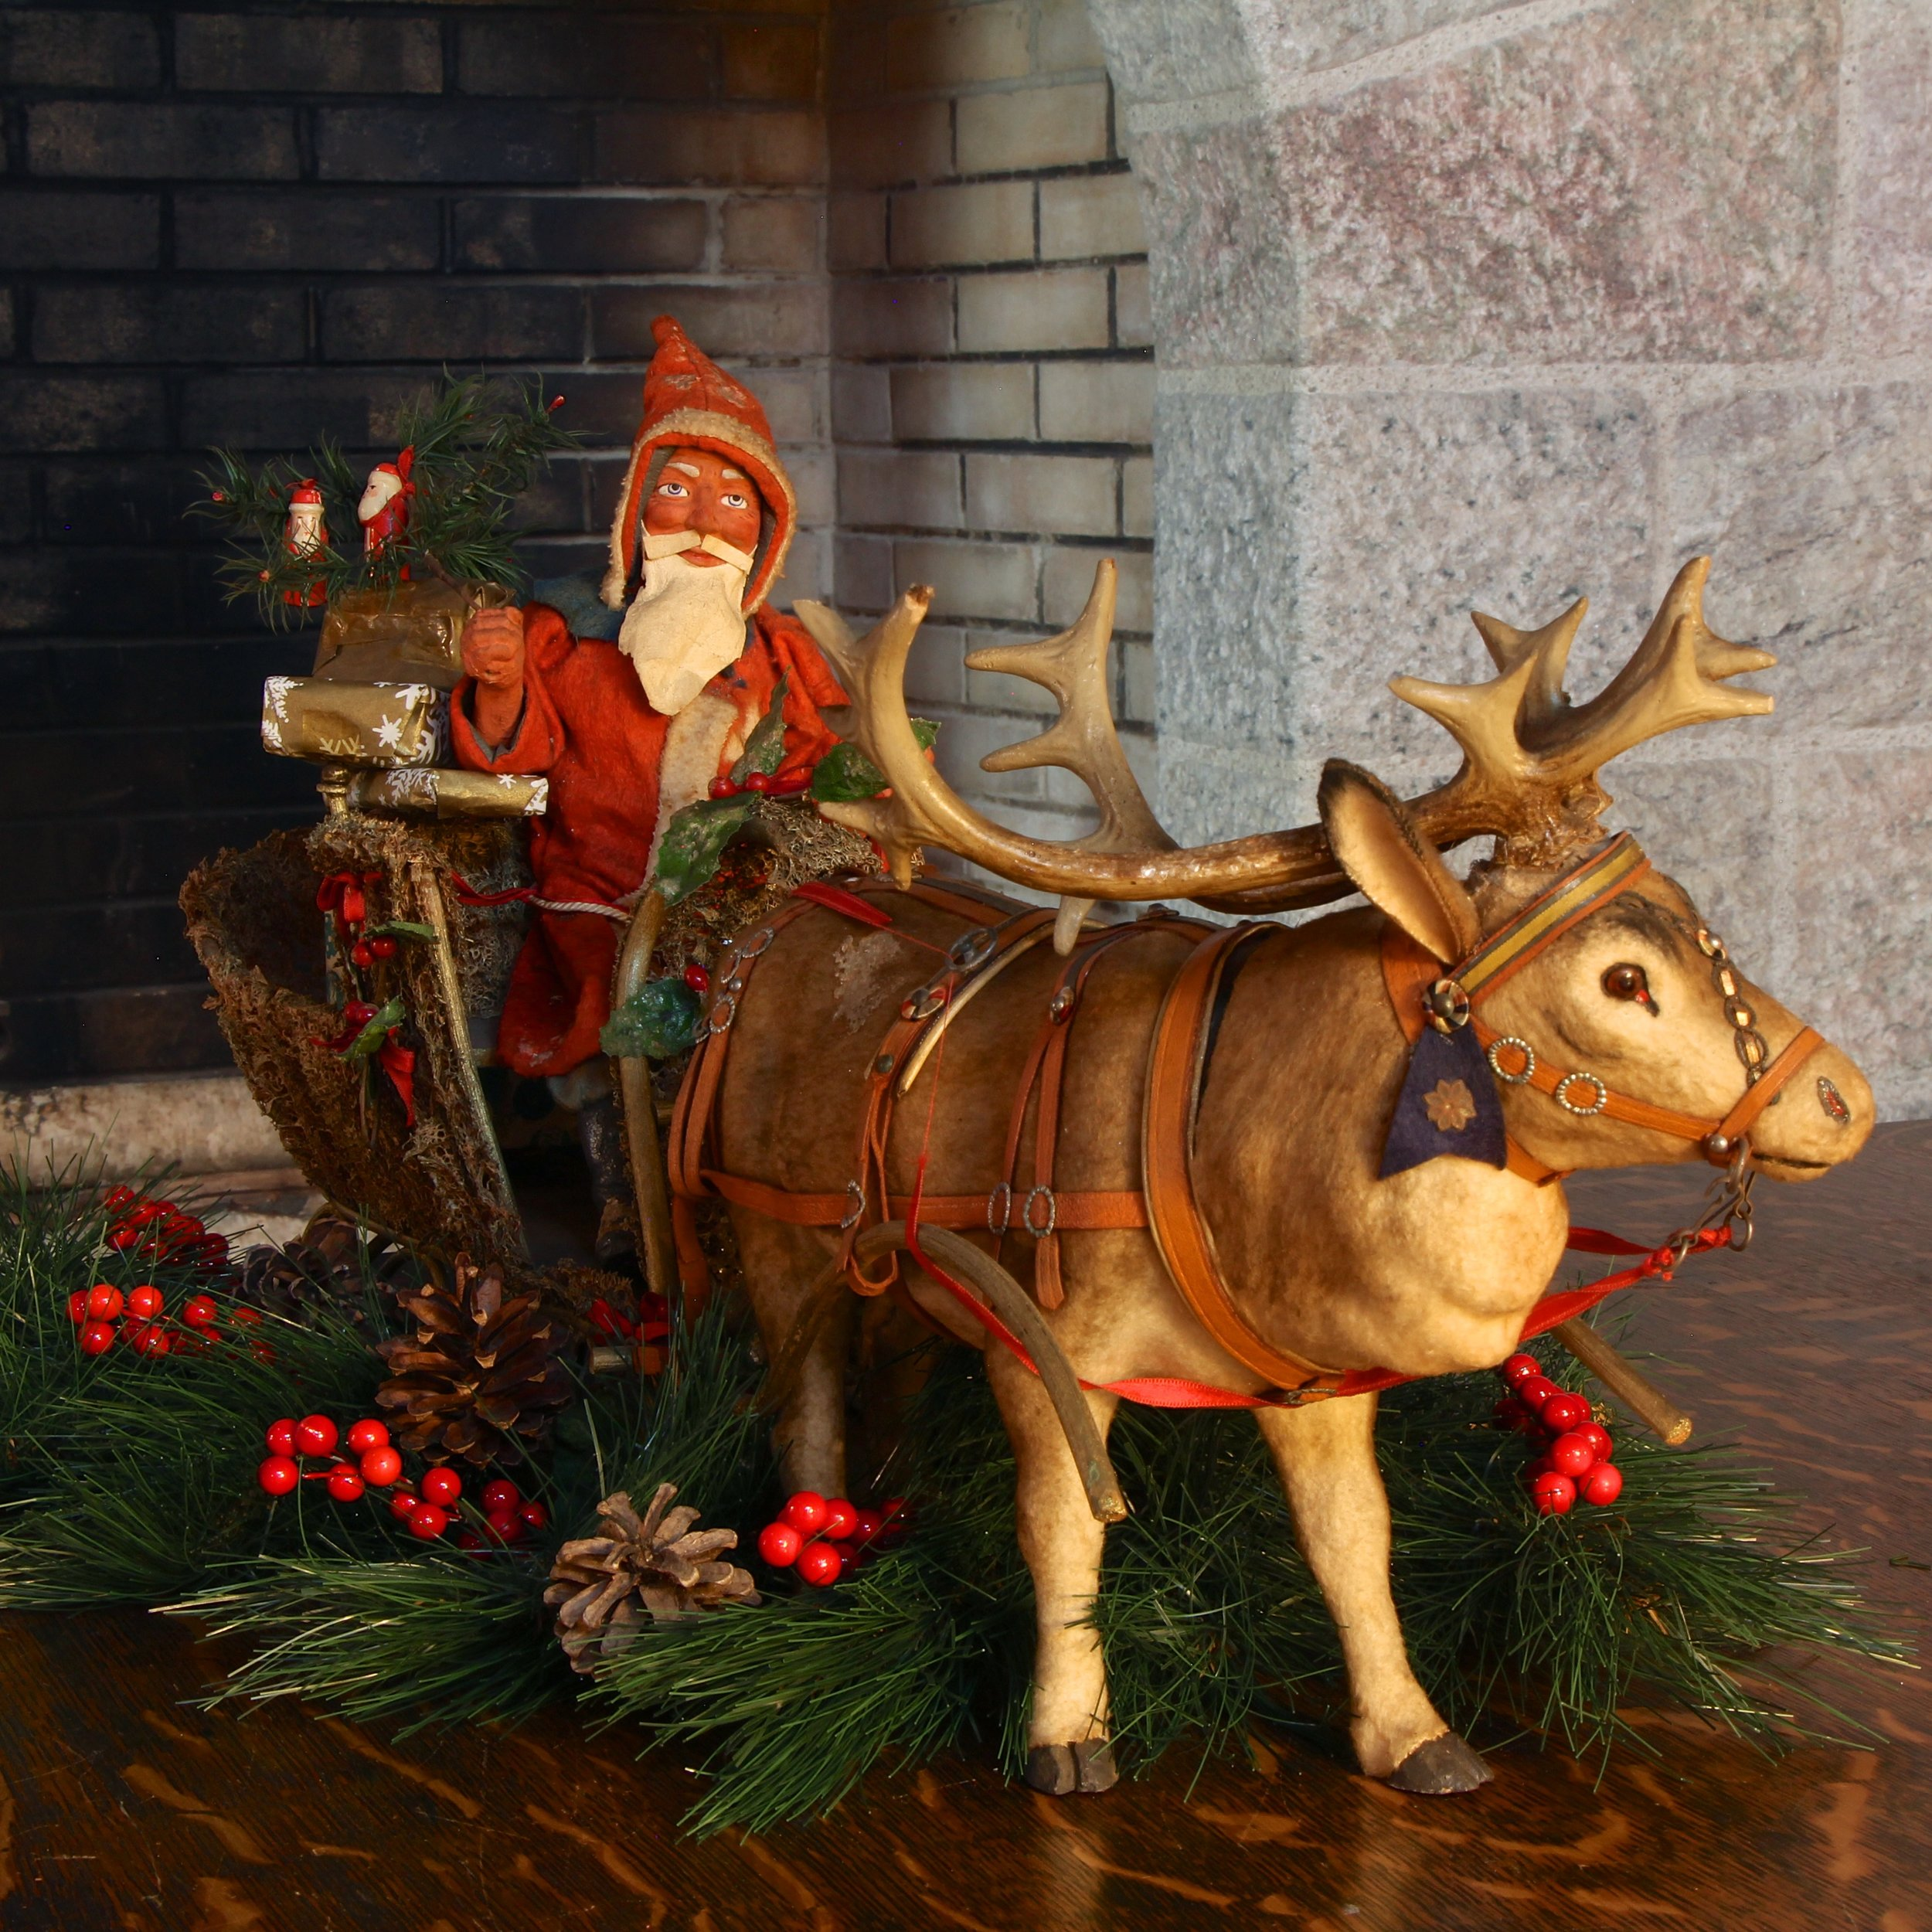 "This Santa, sleigh and reindeer, probably dating to the 1920s, was discovered in a basement storage room in 2016. Old photographs show the decoration being used as the centerpiece for the Pitcairns' Christmas dinner table. The head of the reindeer comes off to reveal a silver-colored cardboard compartment for holding candy. This well-known class of German candy containers is prized by collectors. Visitors to Glencairn Museum will be able to see the candy container on the ""Christmas in the Castle"" guided tour, running from Friday, November 25, 2016 through Sunday, January 8, 2017."